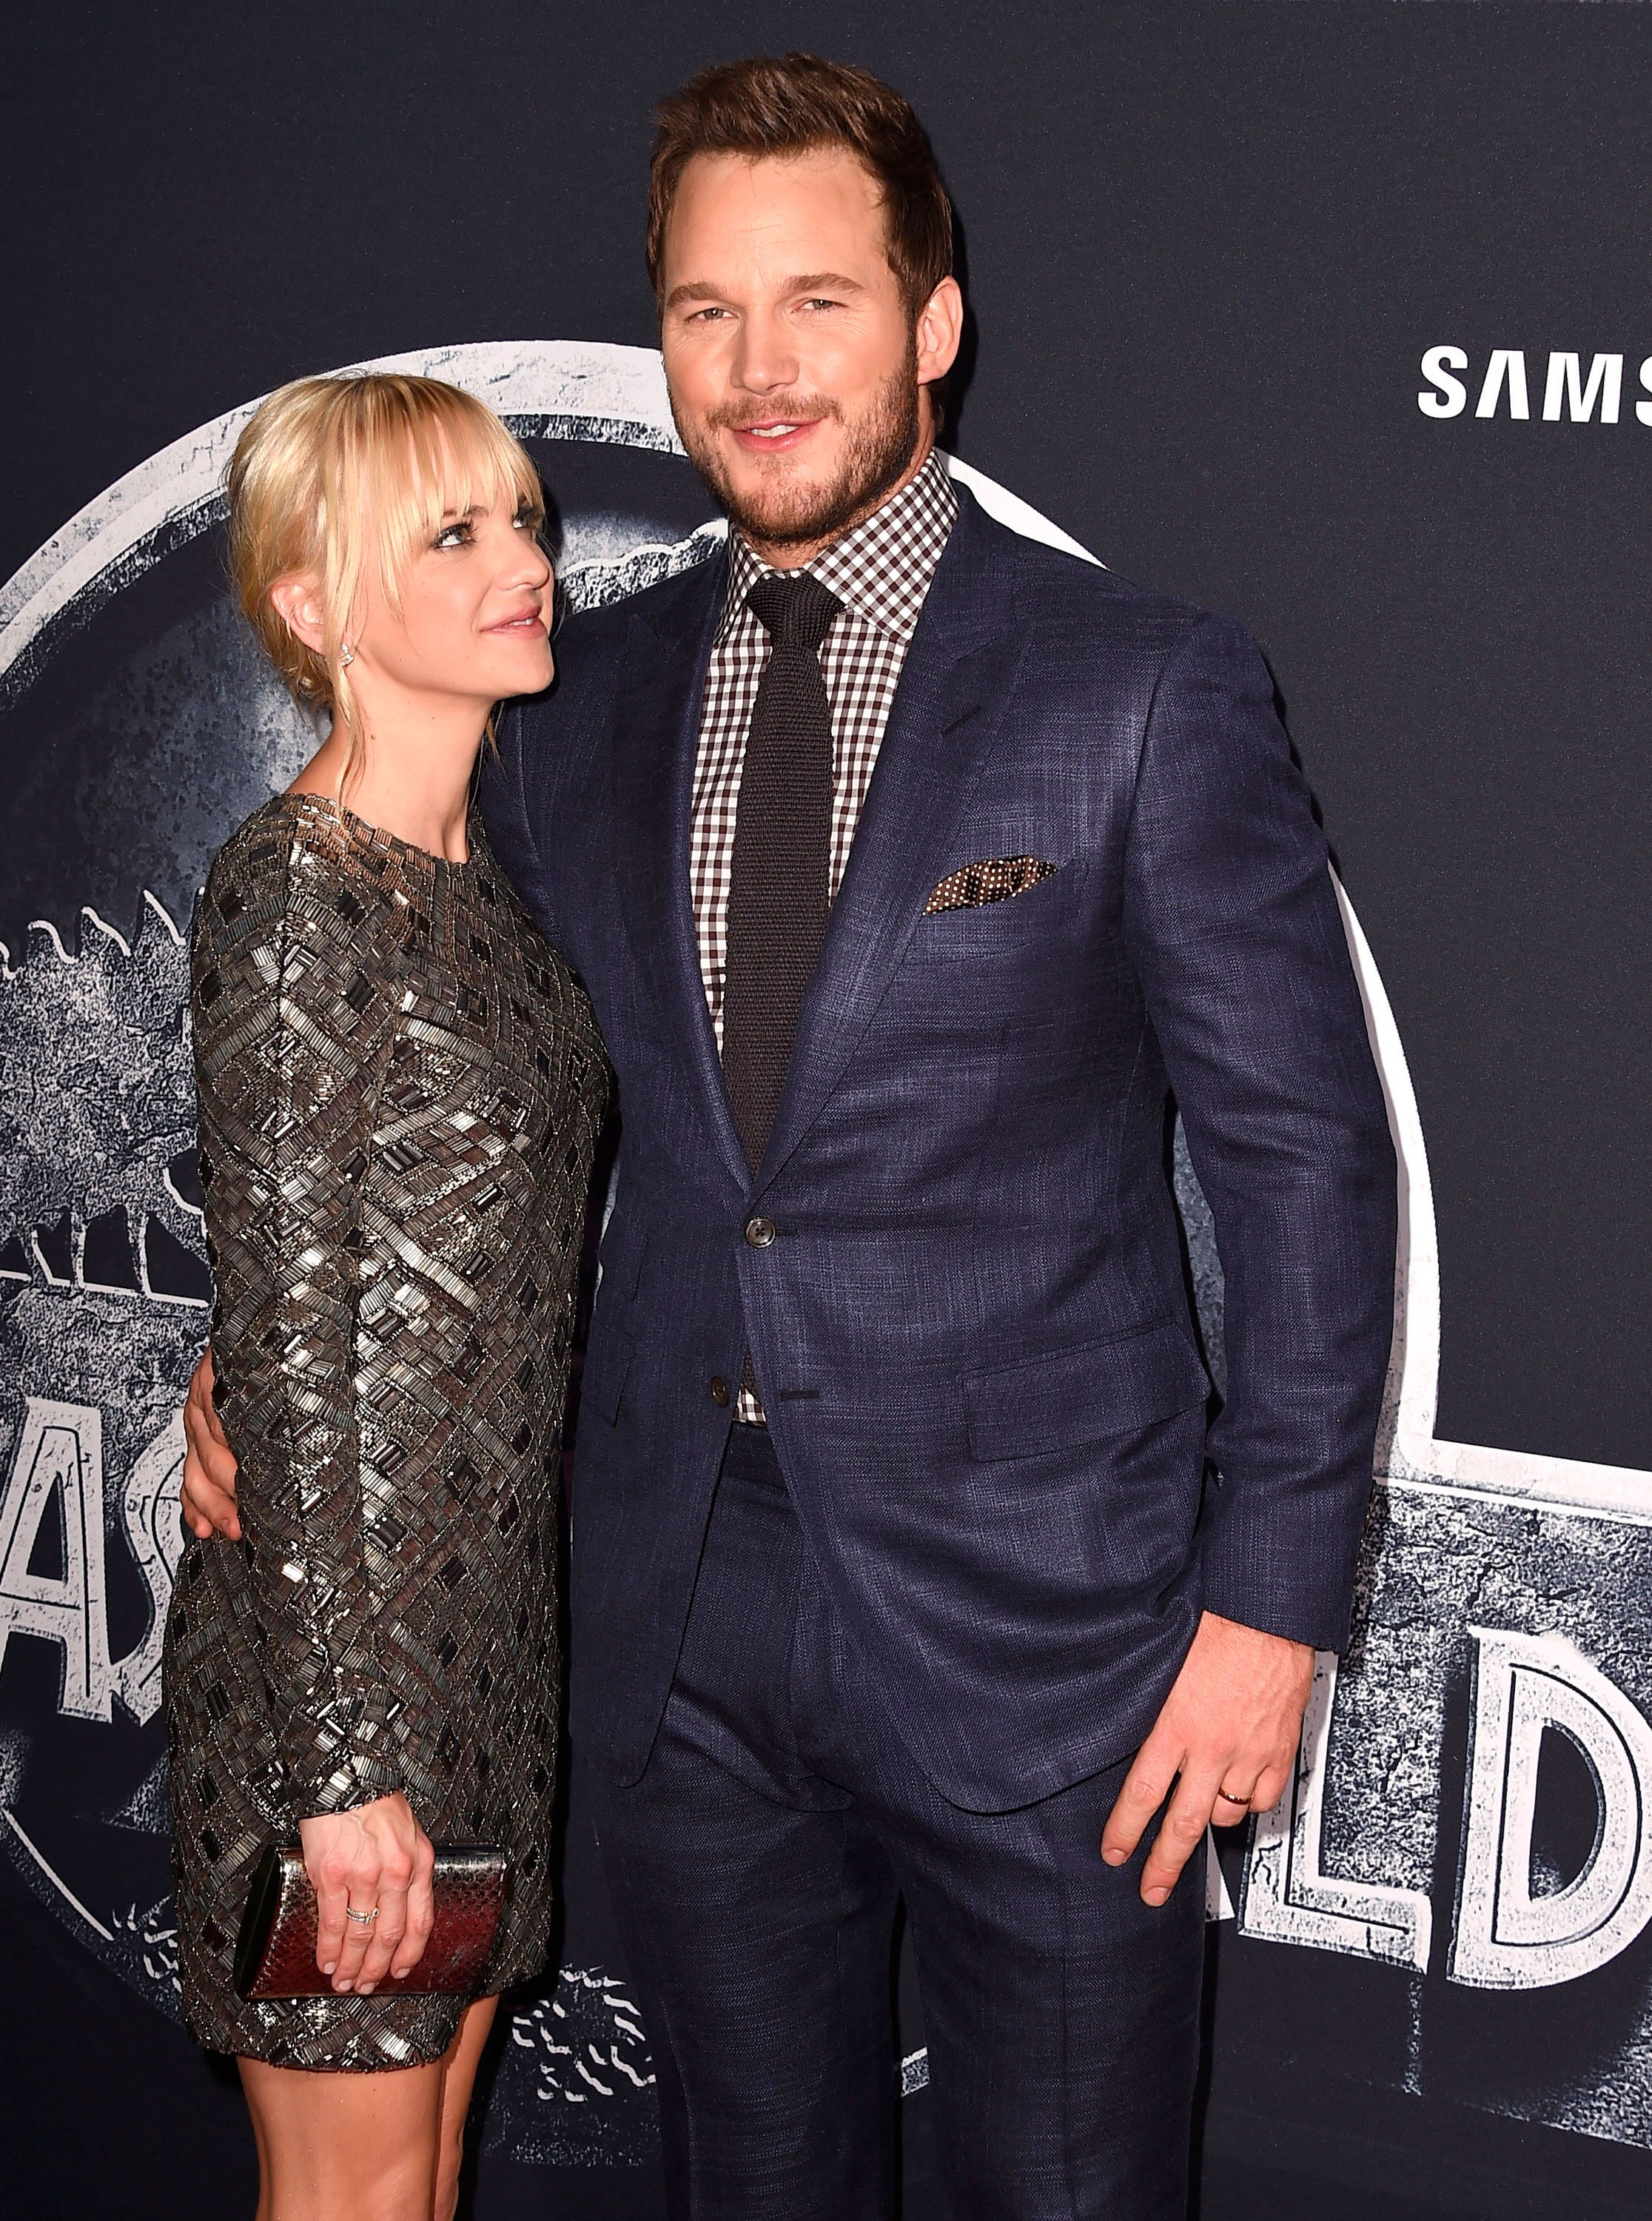 Chris Pratt and Anna Faris: a timeline of their relationship